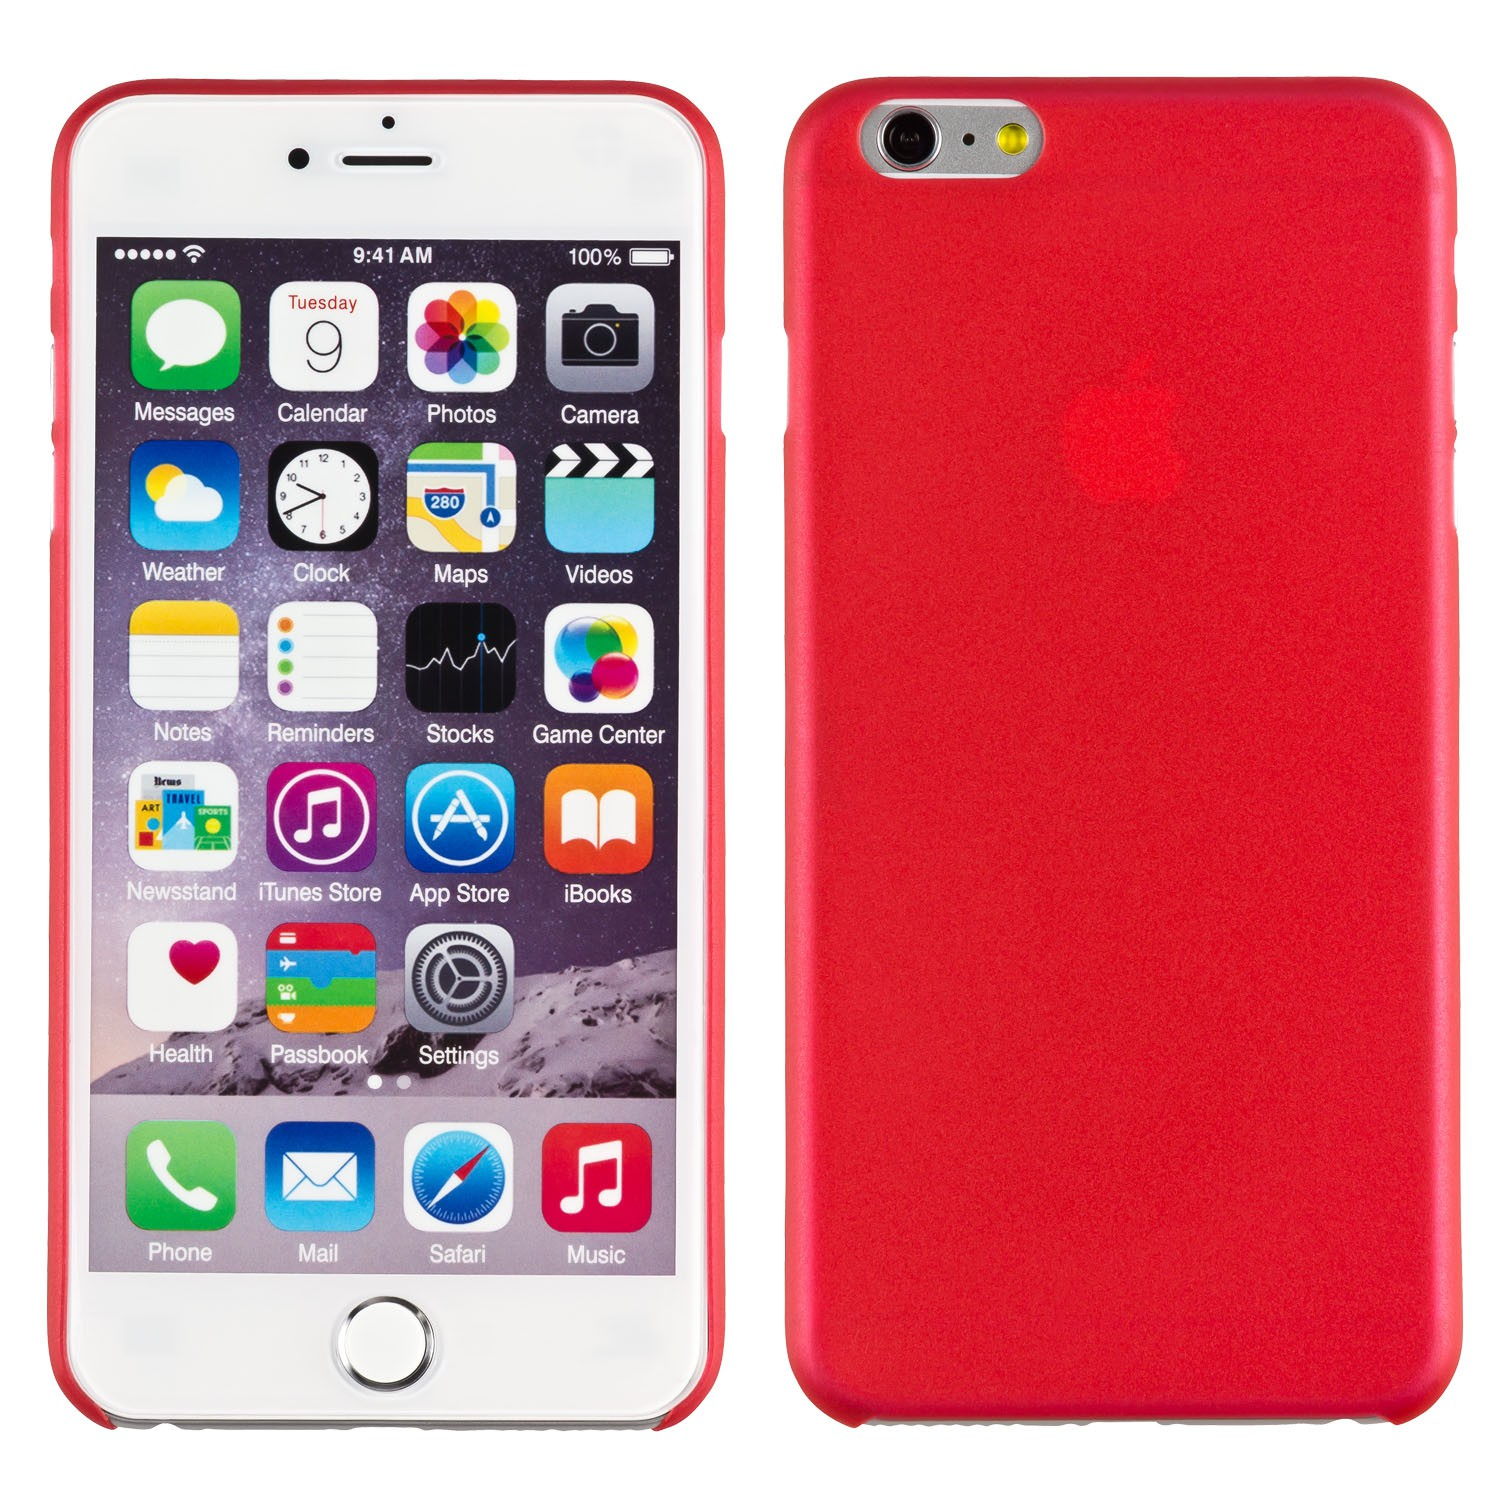 Yemota Pro Slimcase iPhone 6 plus - Rot